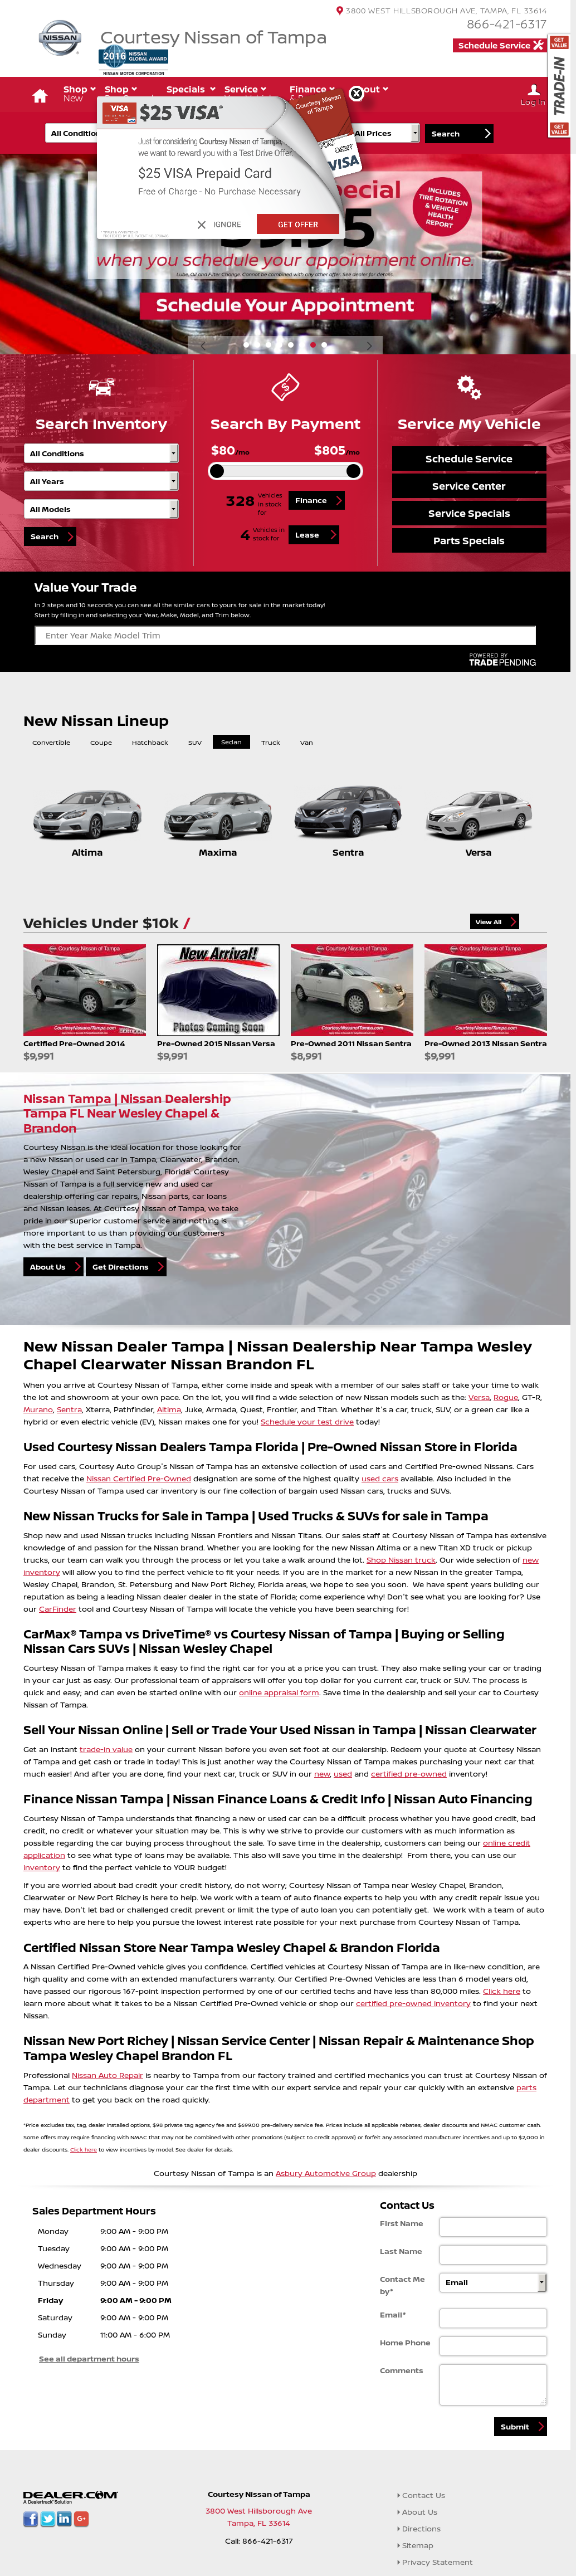 Courtesy Nissan Of Tampa Website History